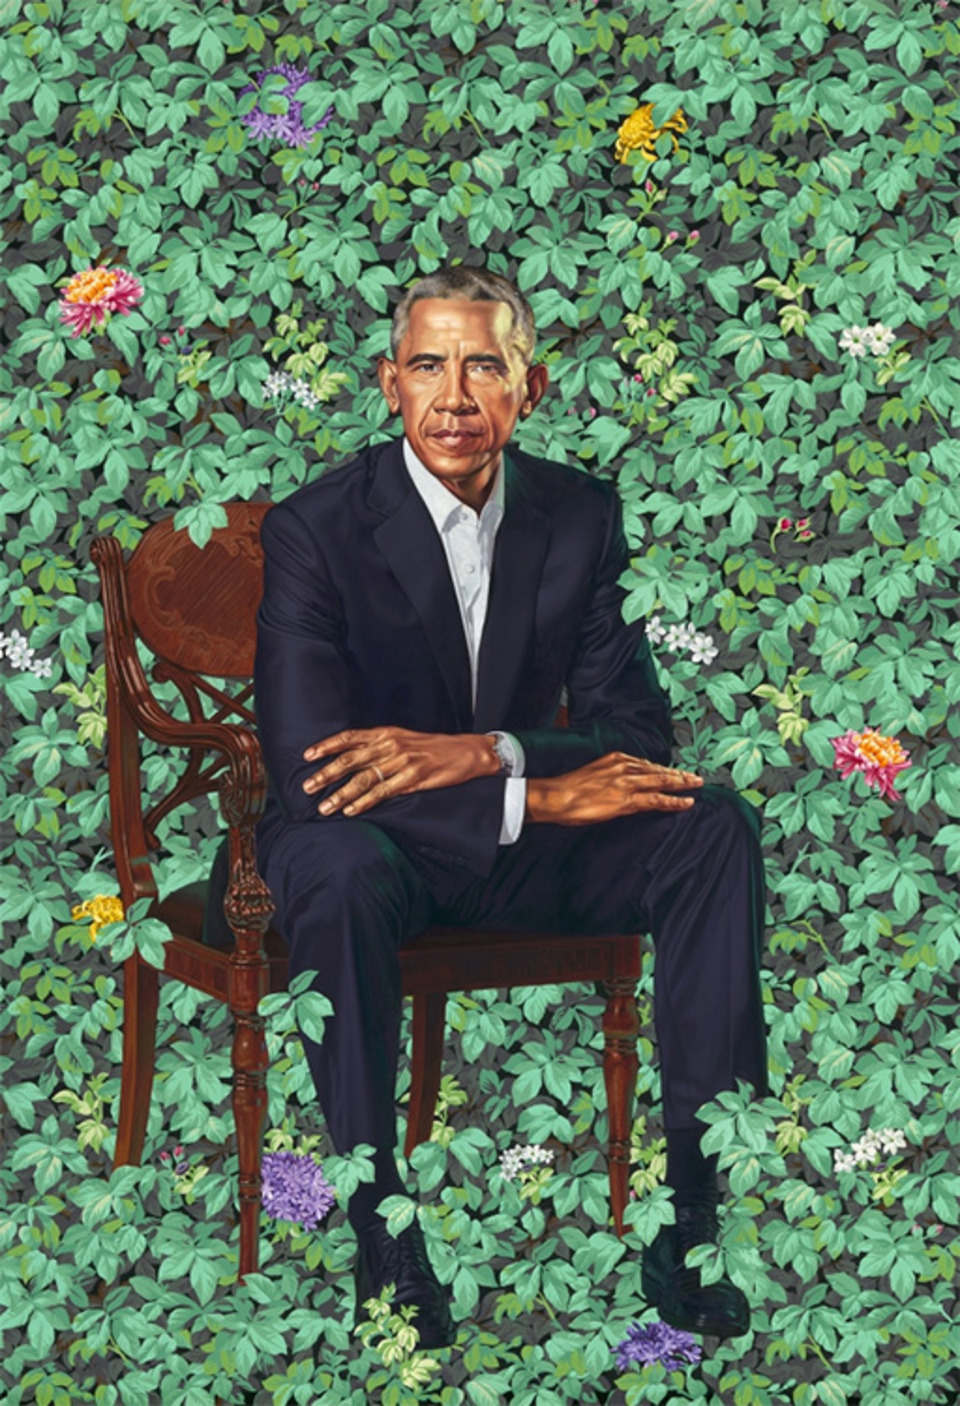 Presidential Portrait of Barack Obama in his uniform of dark suits and white shirts; image via washingtoncitypaper.com.